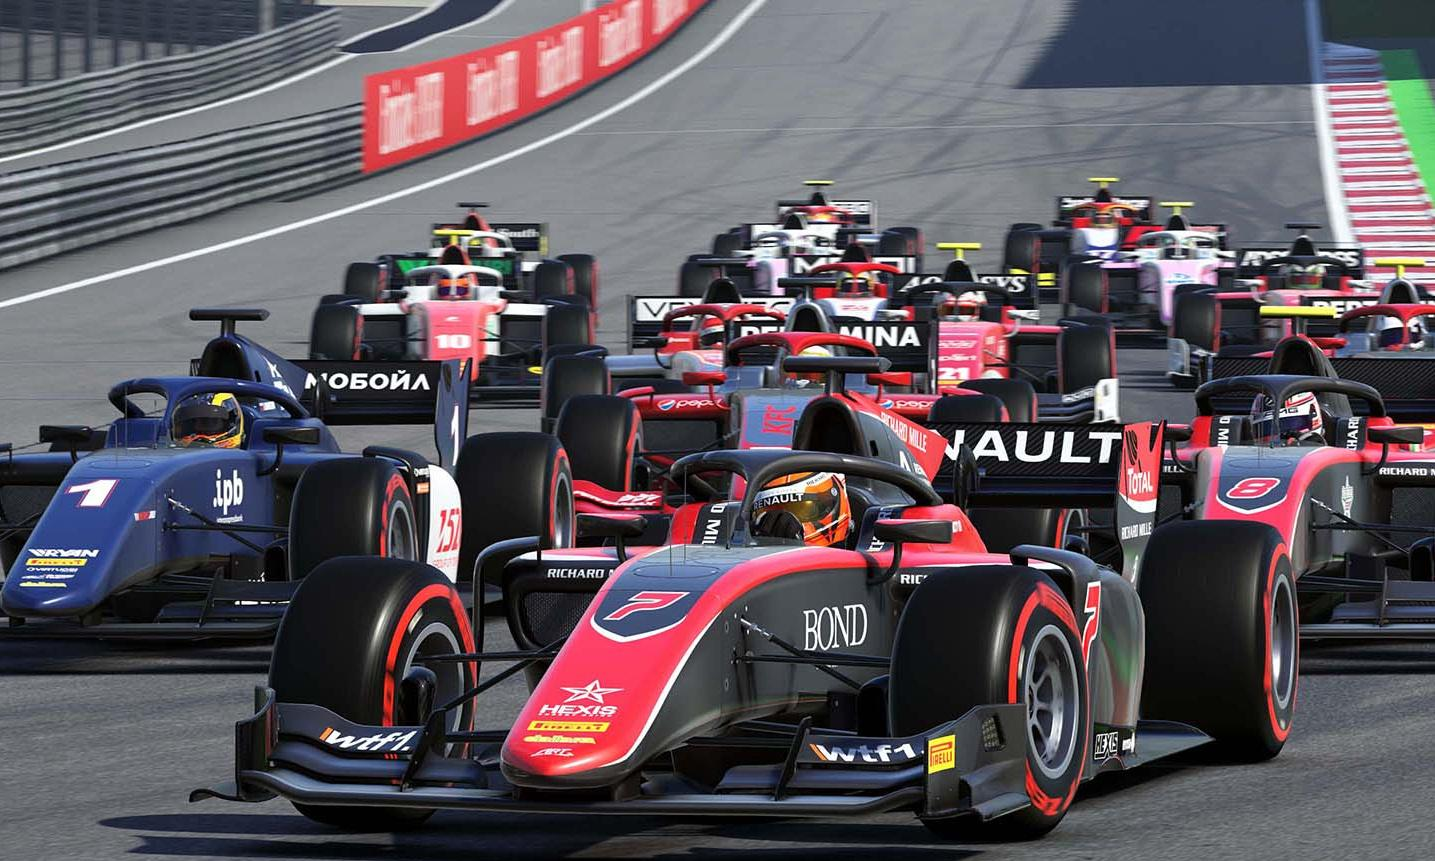 F1 2019 review – sublime motorsports simulation